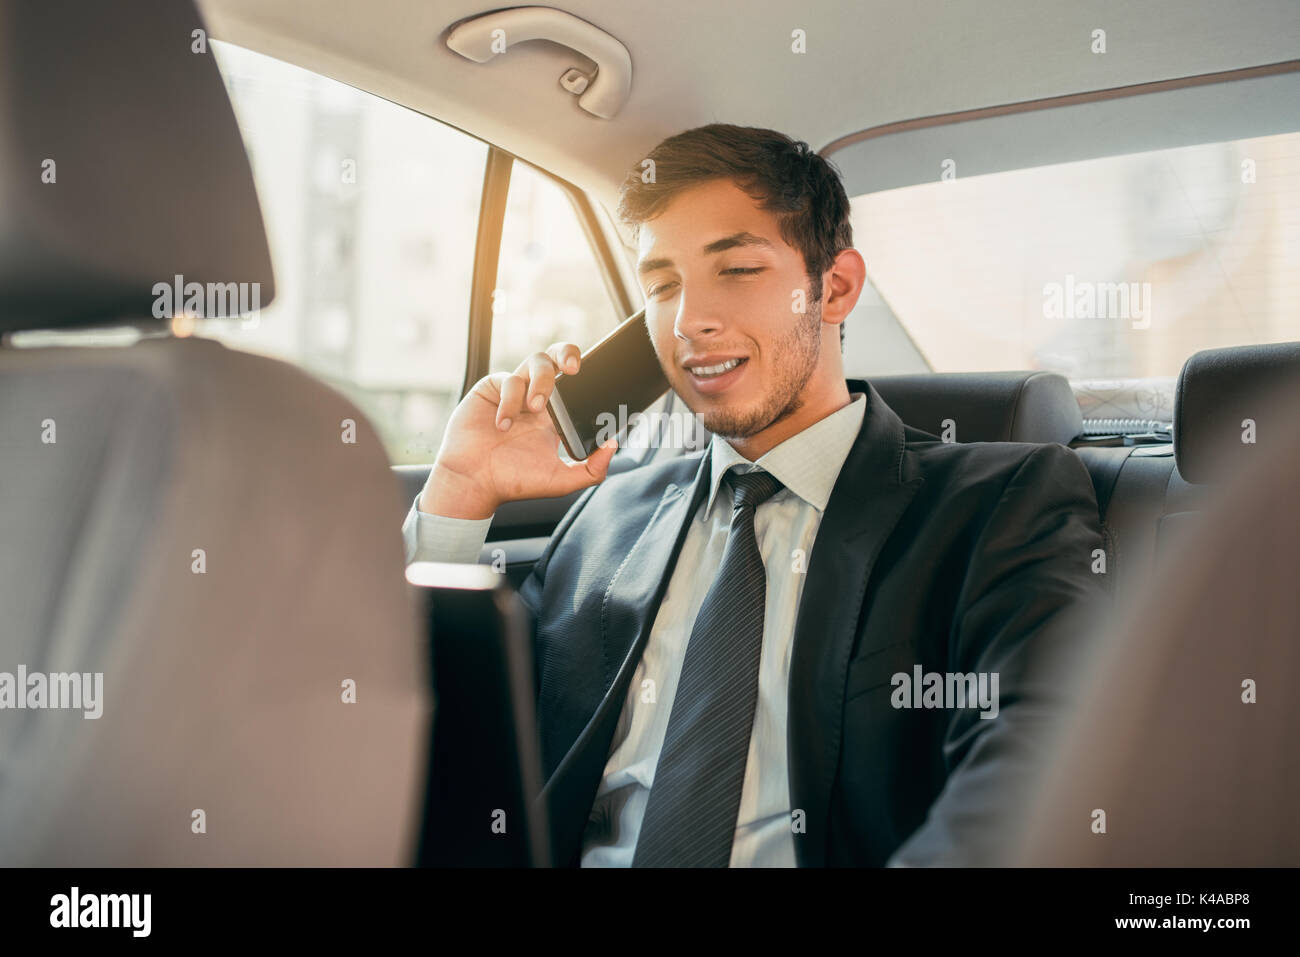 Businessman working while sitting in a car. Man beeing driven to work in his limo. Suit and tie businessman in the back seat making a call while the limo driver is driving. - Stock Image